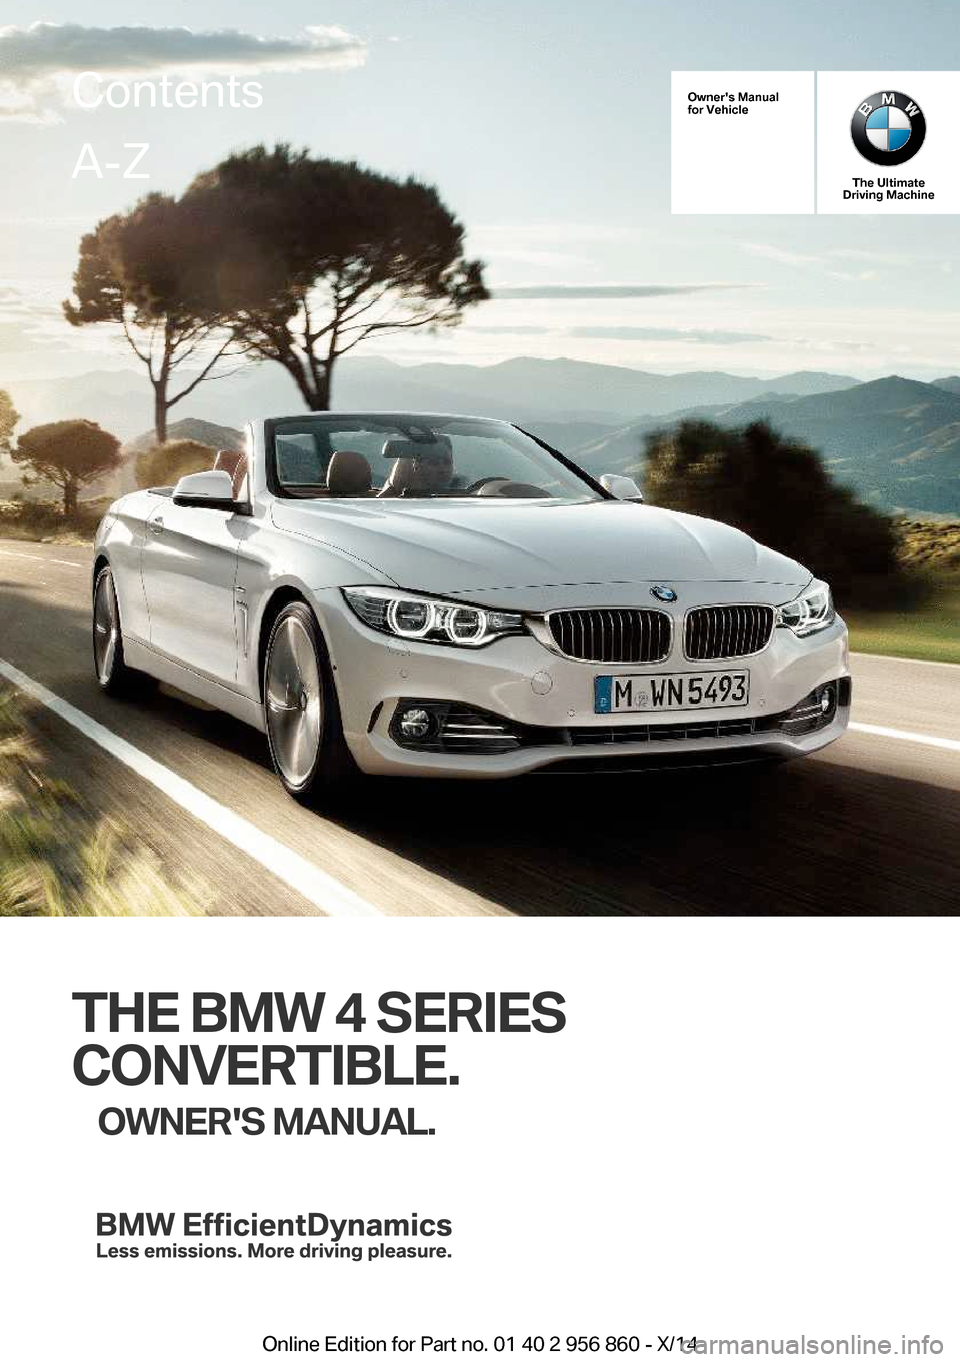 BMW 4 SERIES CONVERTIBLE 2014 F33 Owner's Manual (244 Pages)